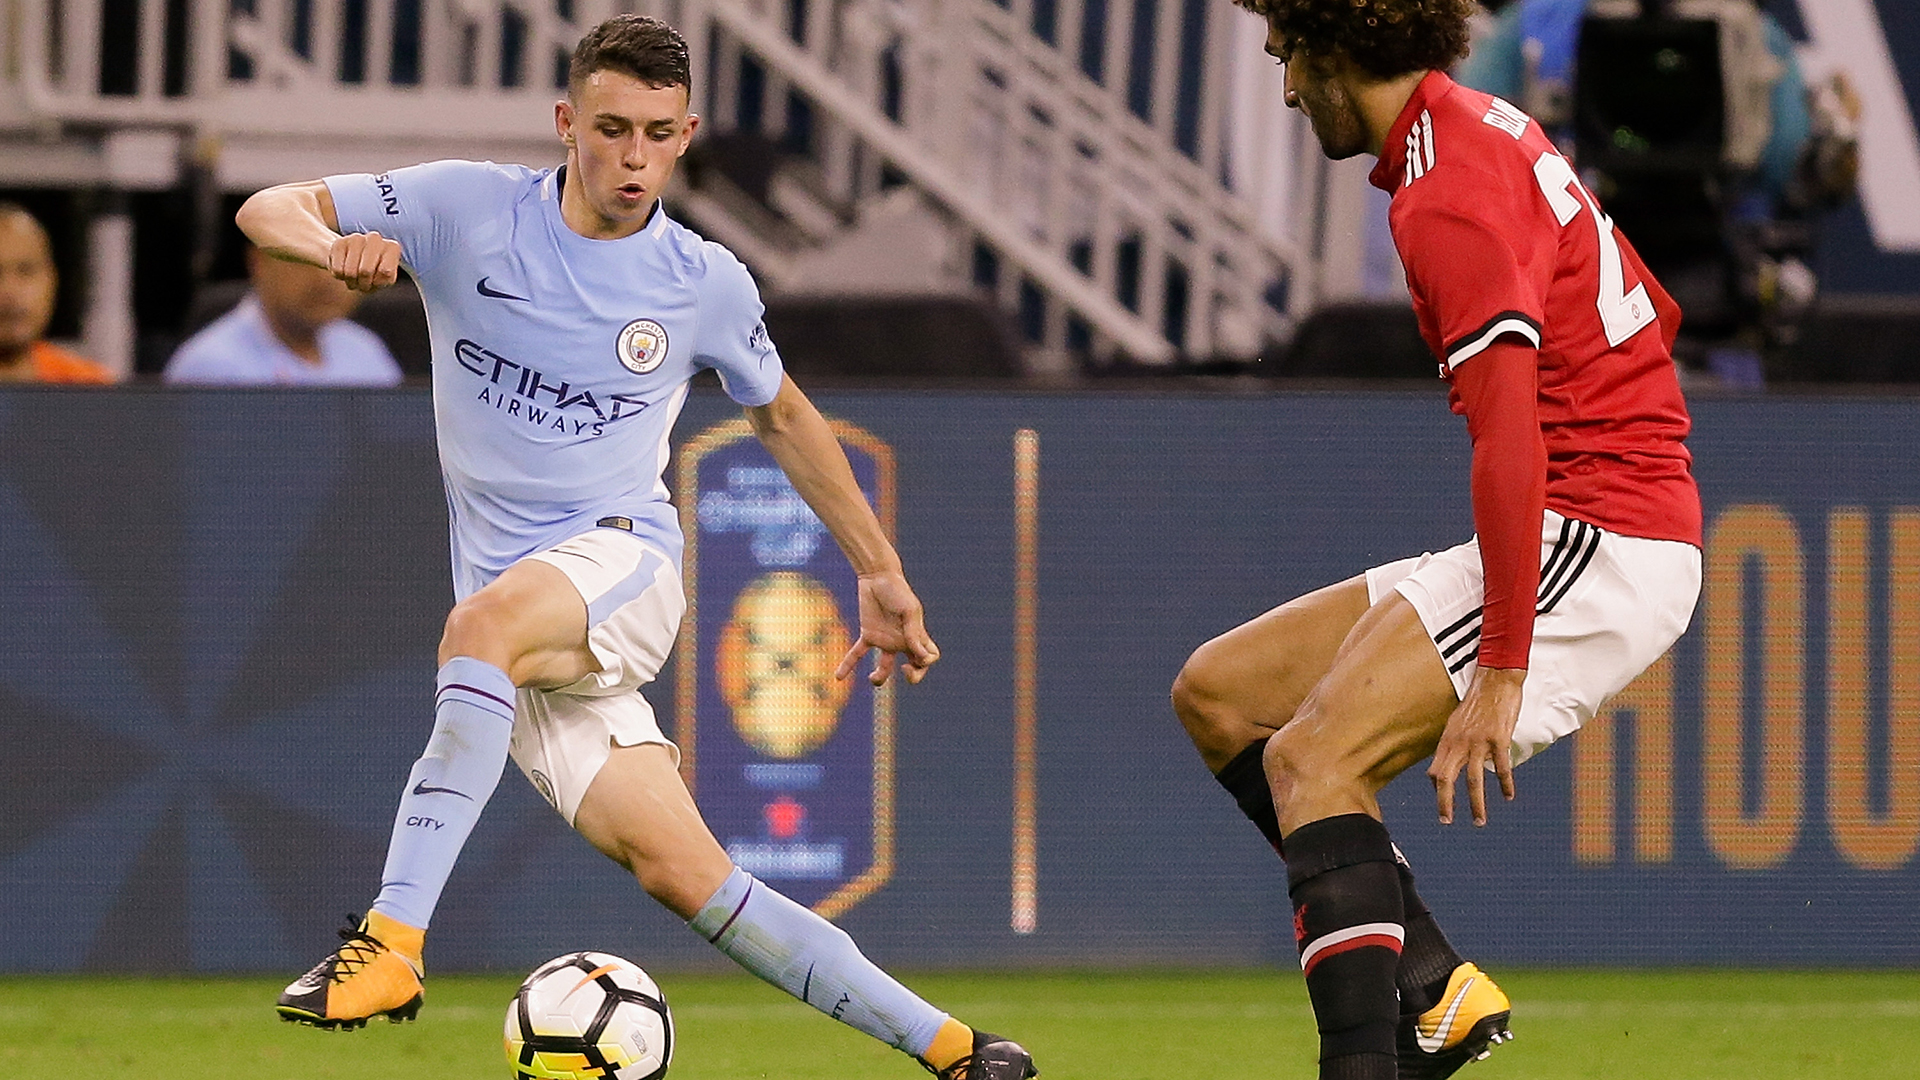 Phil Foden Wallpapers - Wallpaper Cave